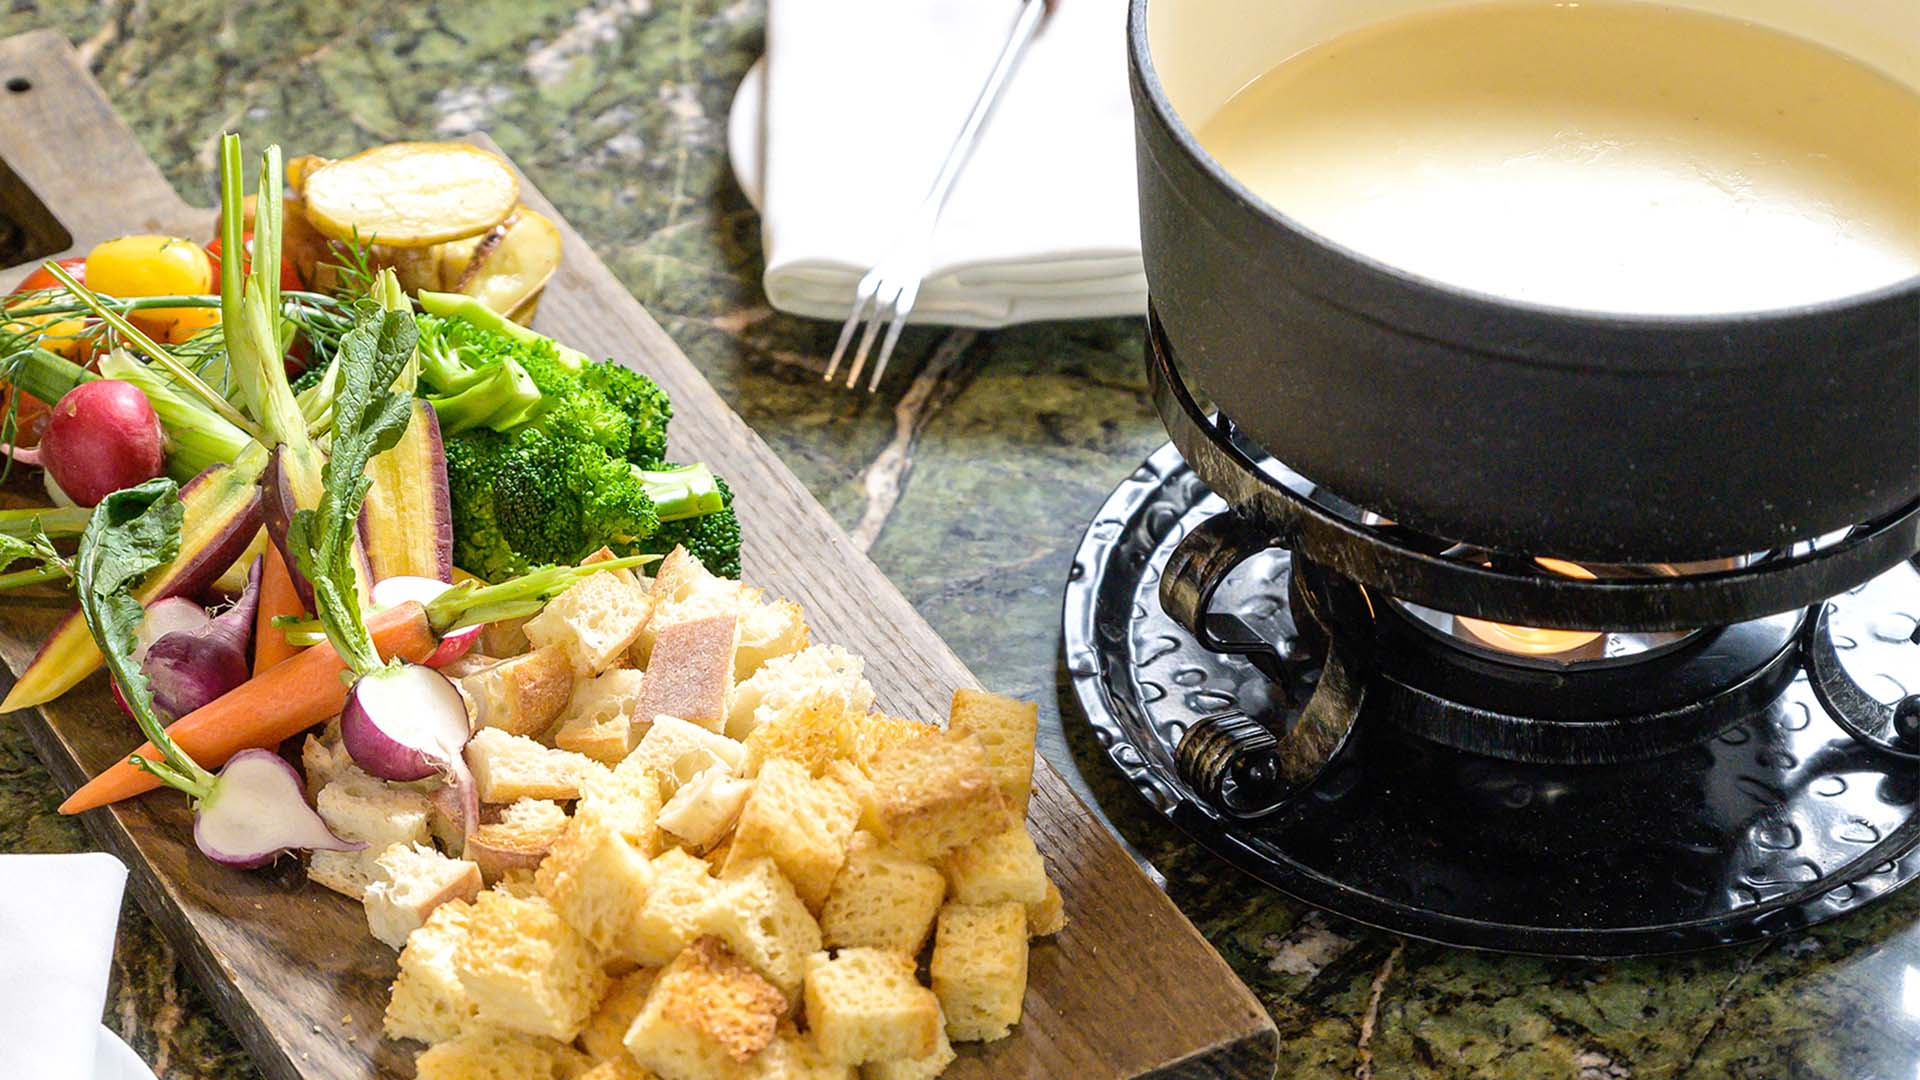 Cheese fondue in a black fondue pot, with fresh baked croutons and fresh garden vegetables for dipping on the side on a wooden cutting board.